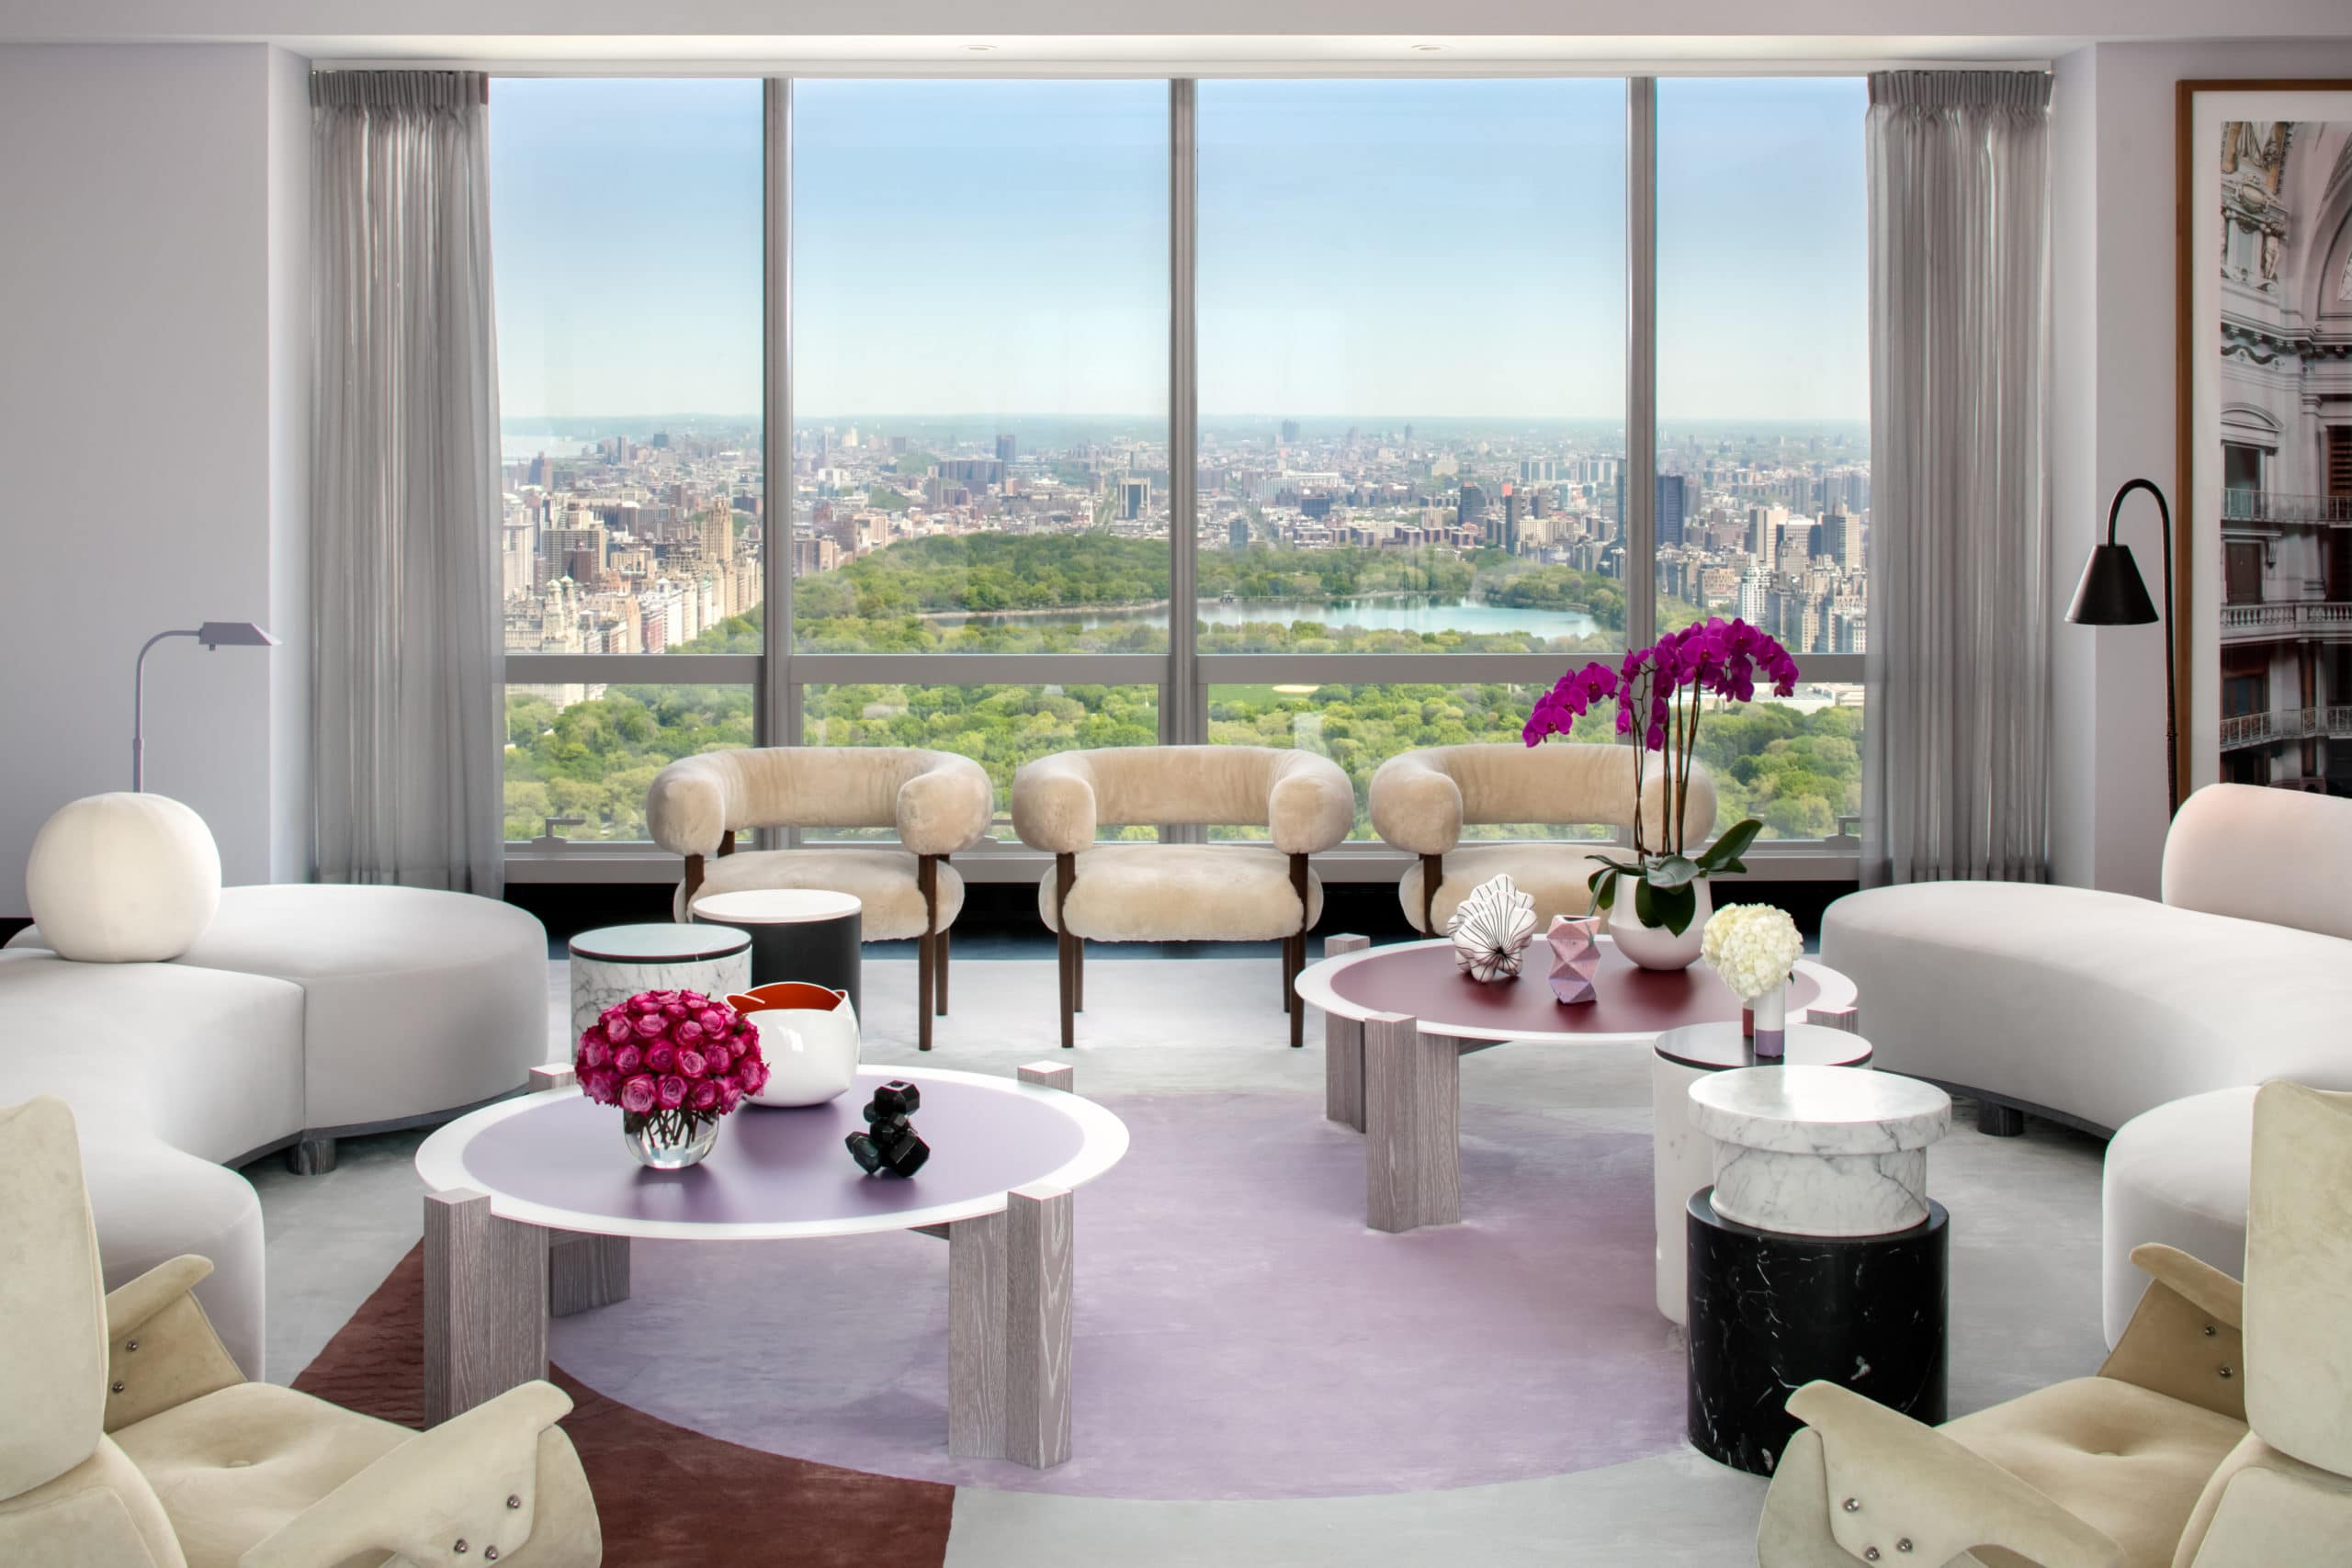 Living room at One 57 condominiums in New York. Light colored furniture, two coffee tables and floor-to-ceilings windows.